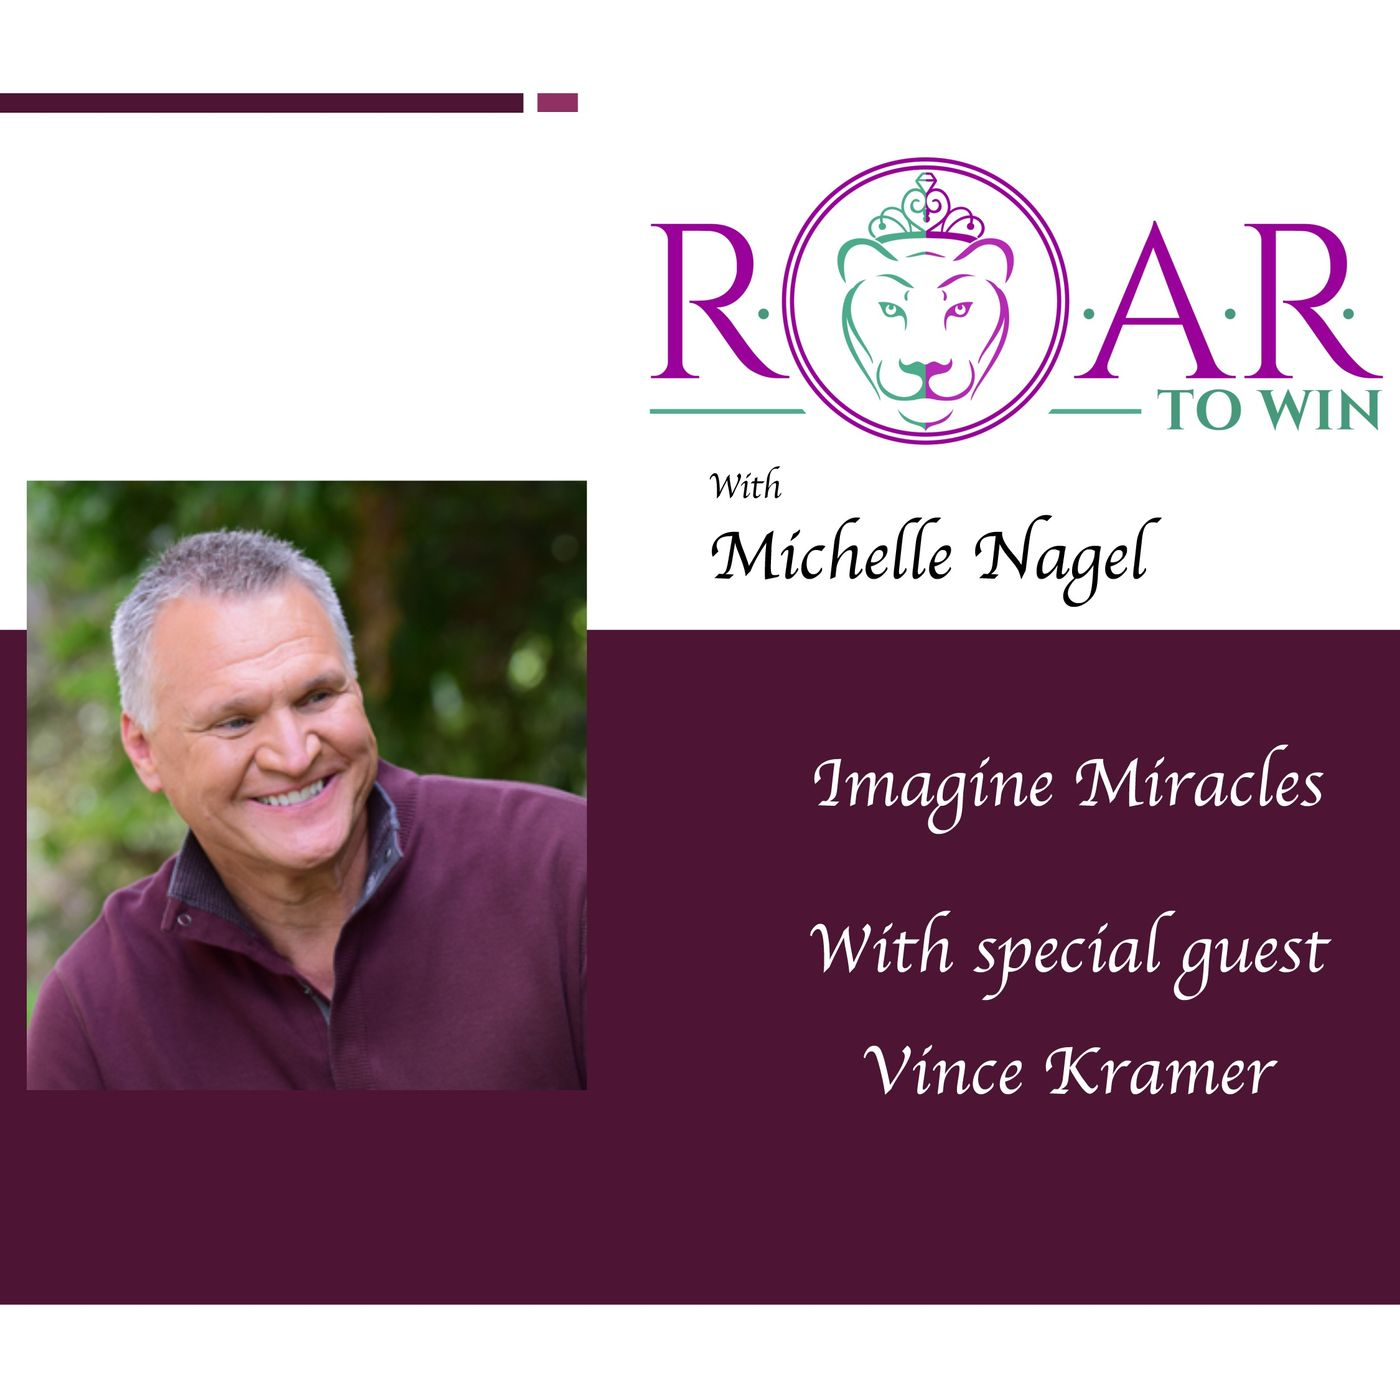 Imagine Miracles with Vince Kramer